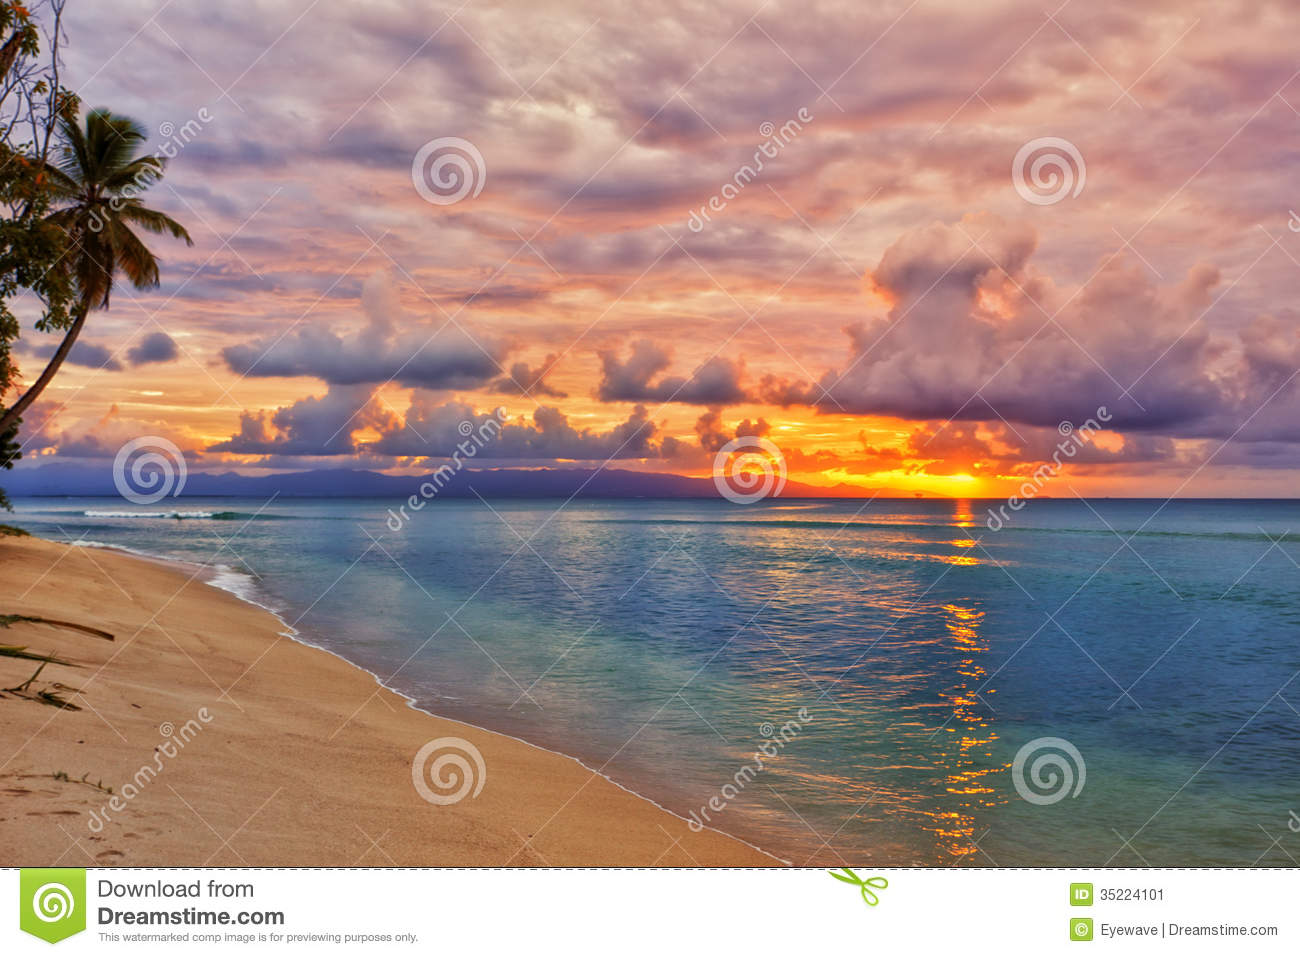 Vibrant Caribbean: Caribbean Beach Sunset Stock Image. Image Of Sunset, Tree